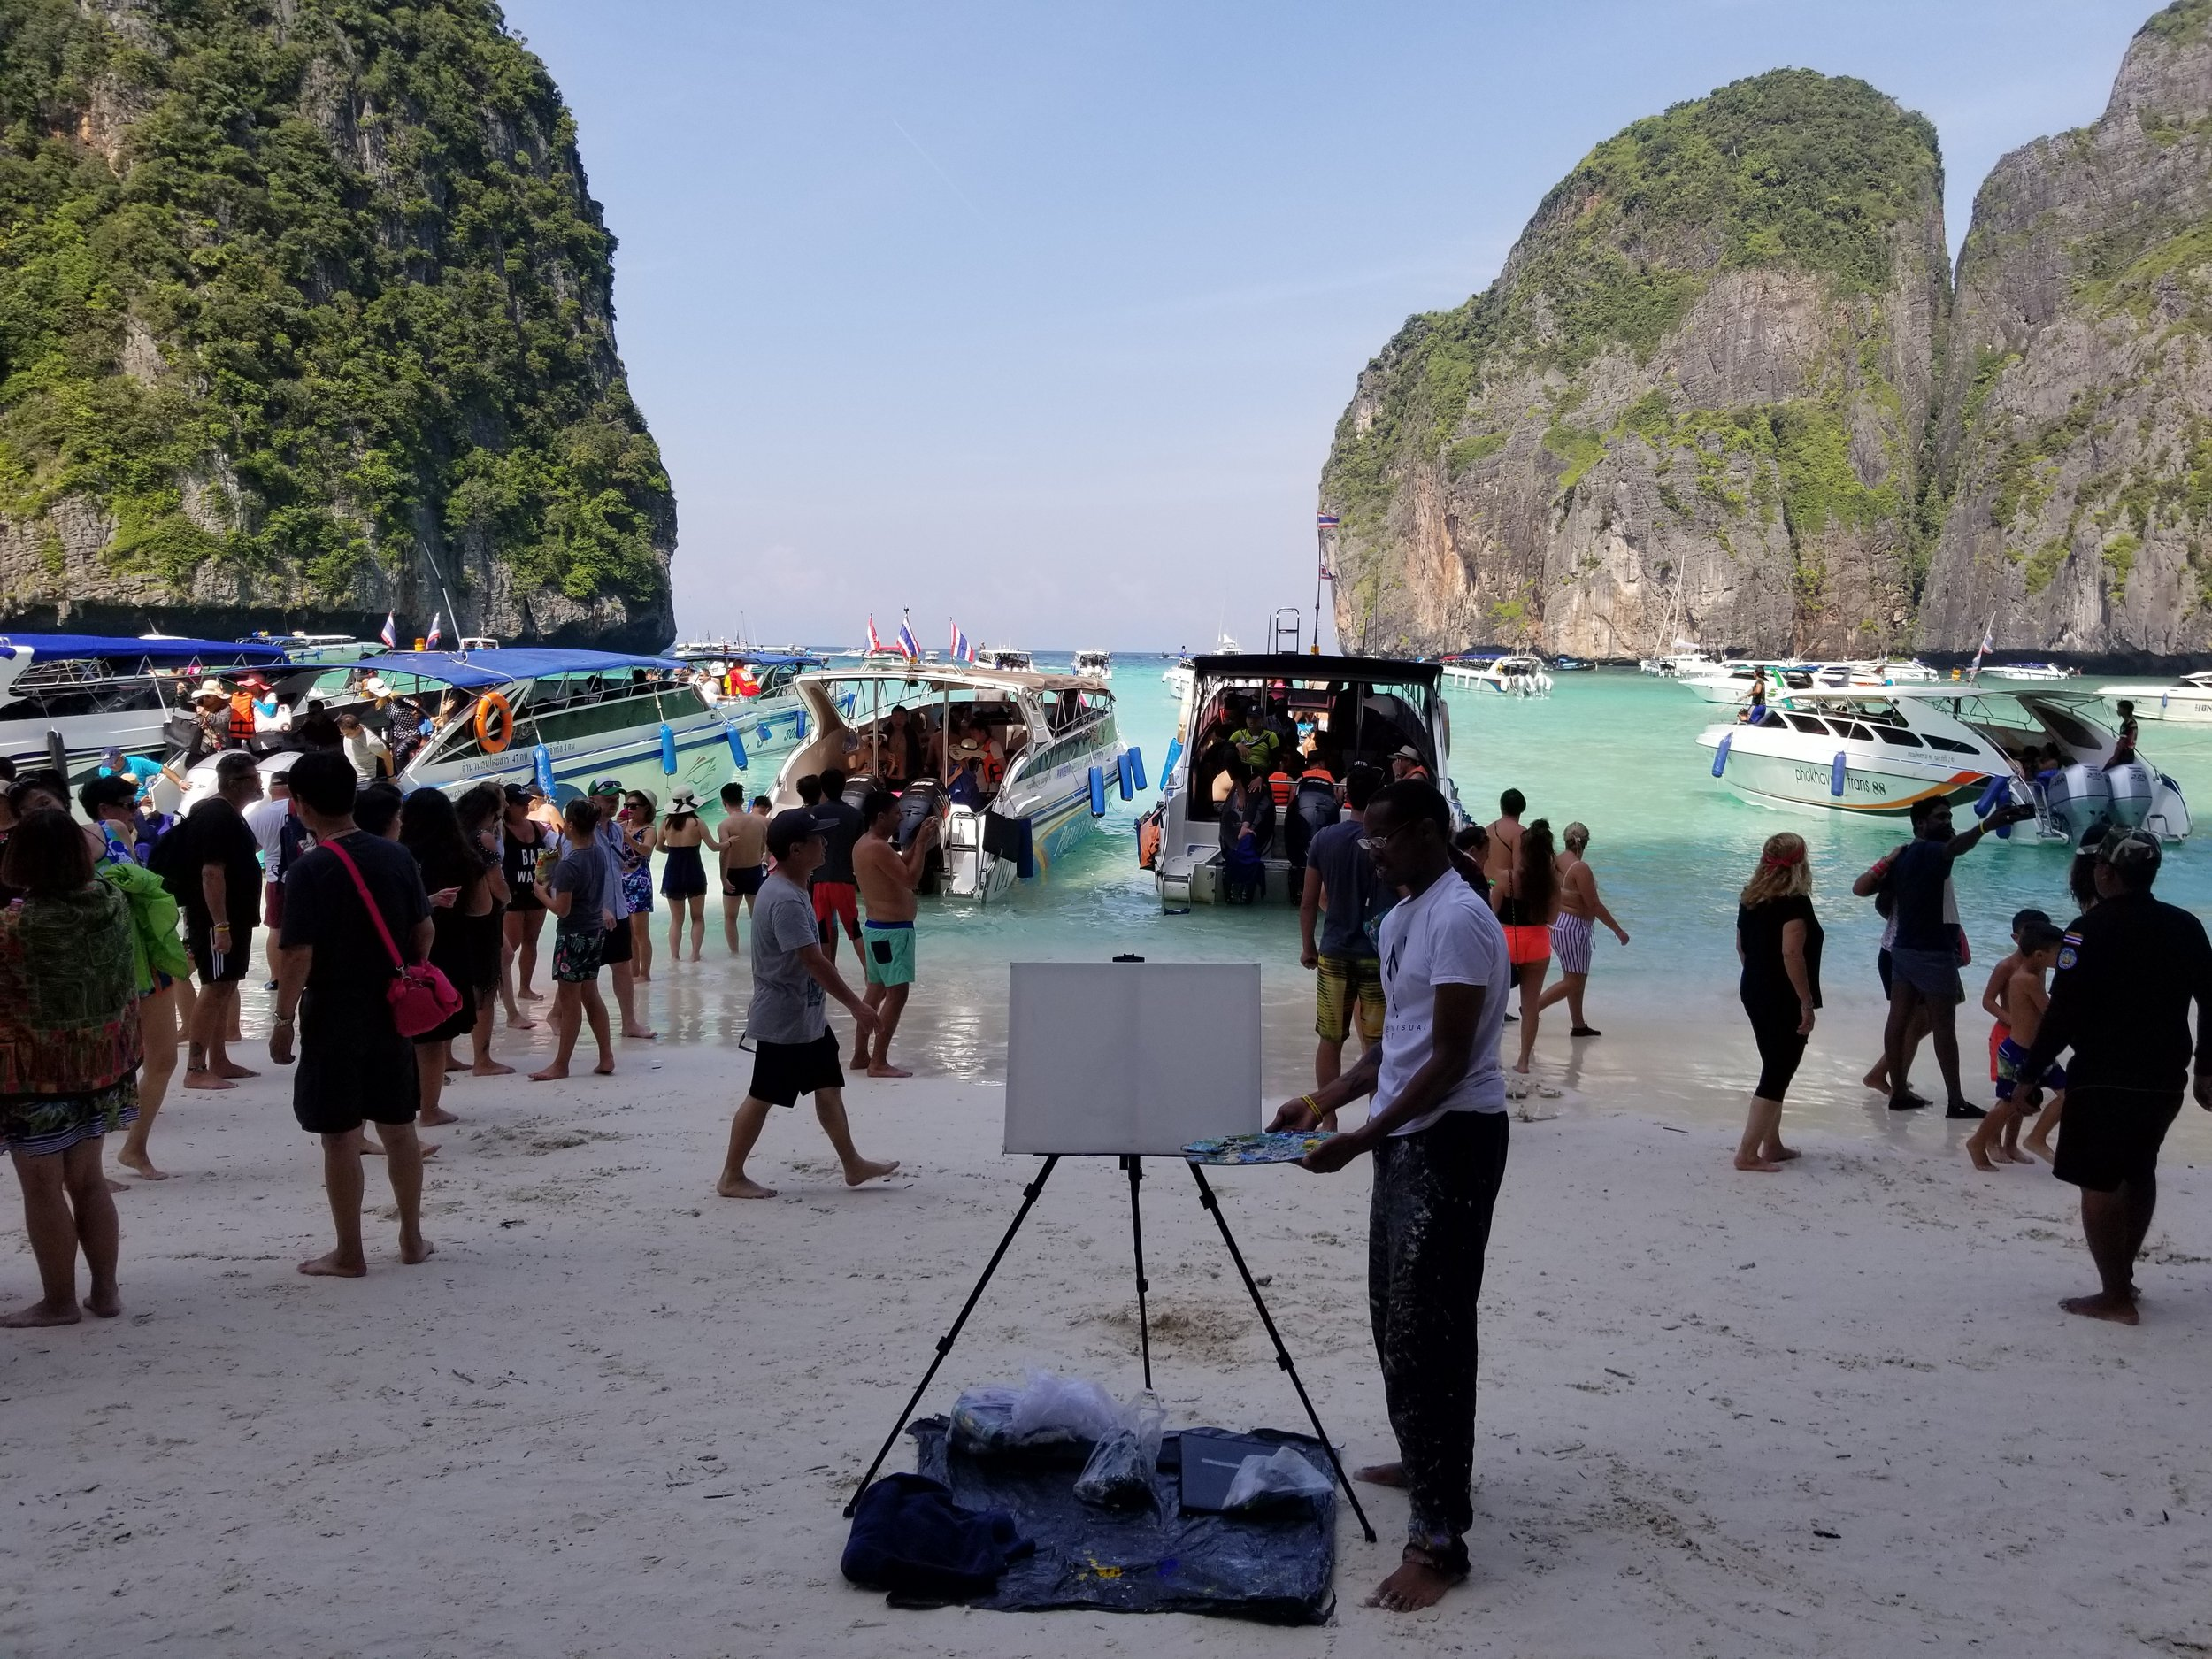 Me at my live painting show event on the beach at Maya Bay in Phi Phi Islands.